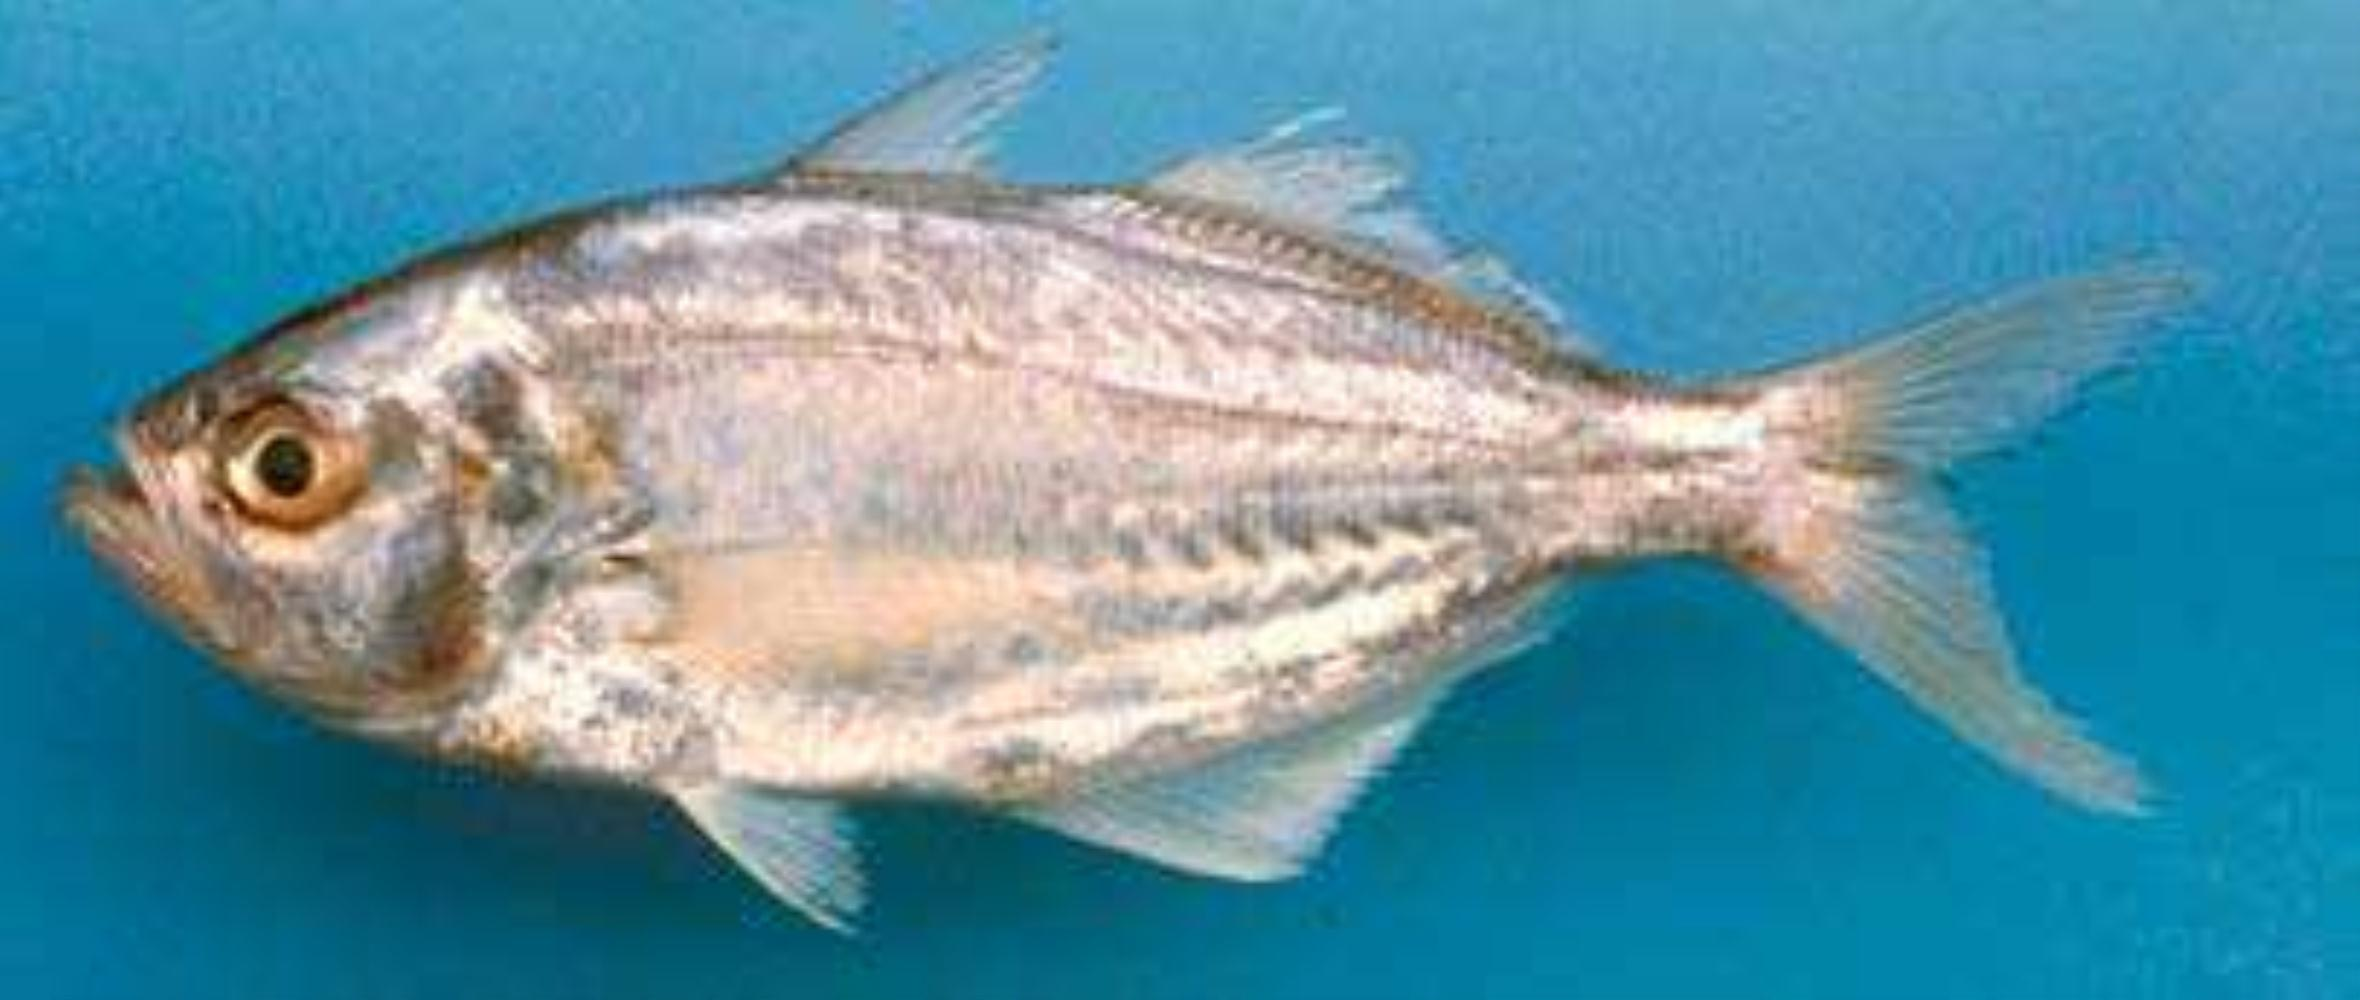 False trevally